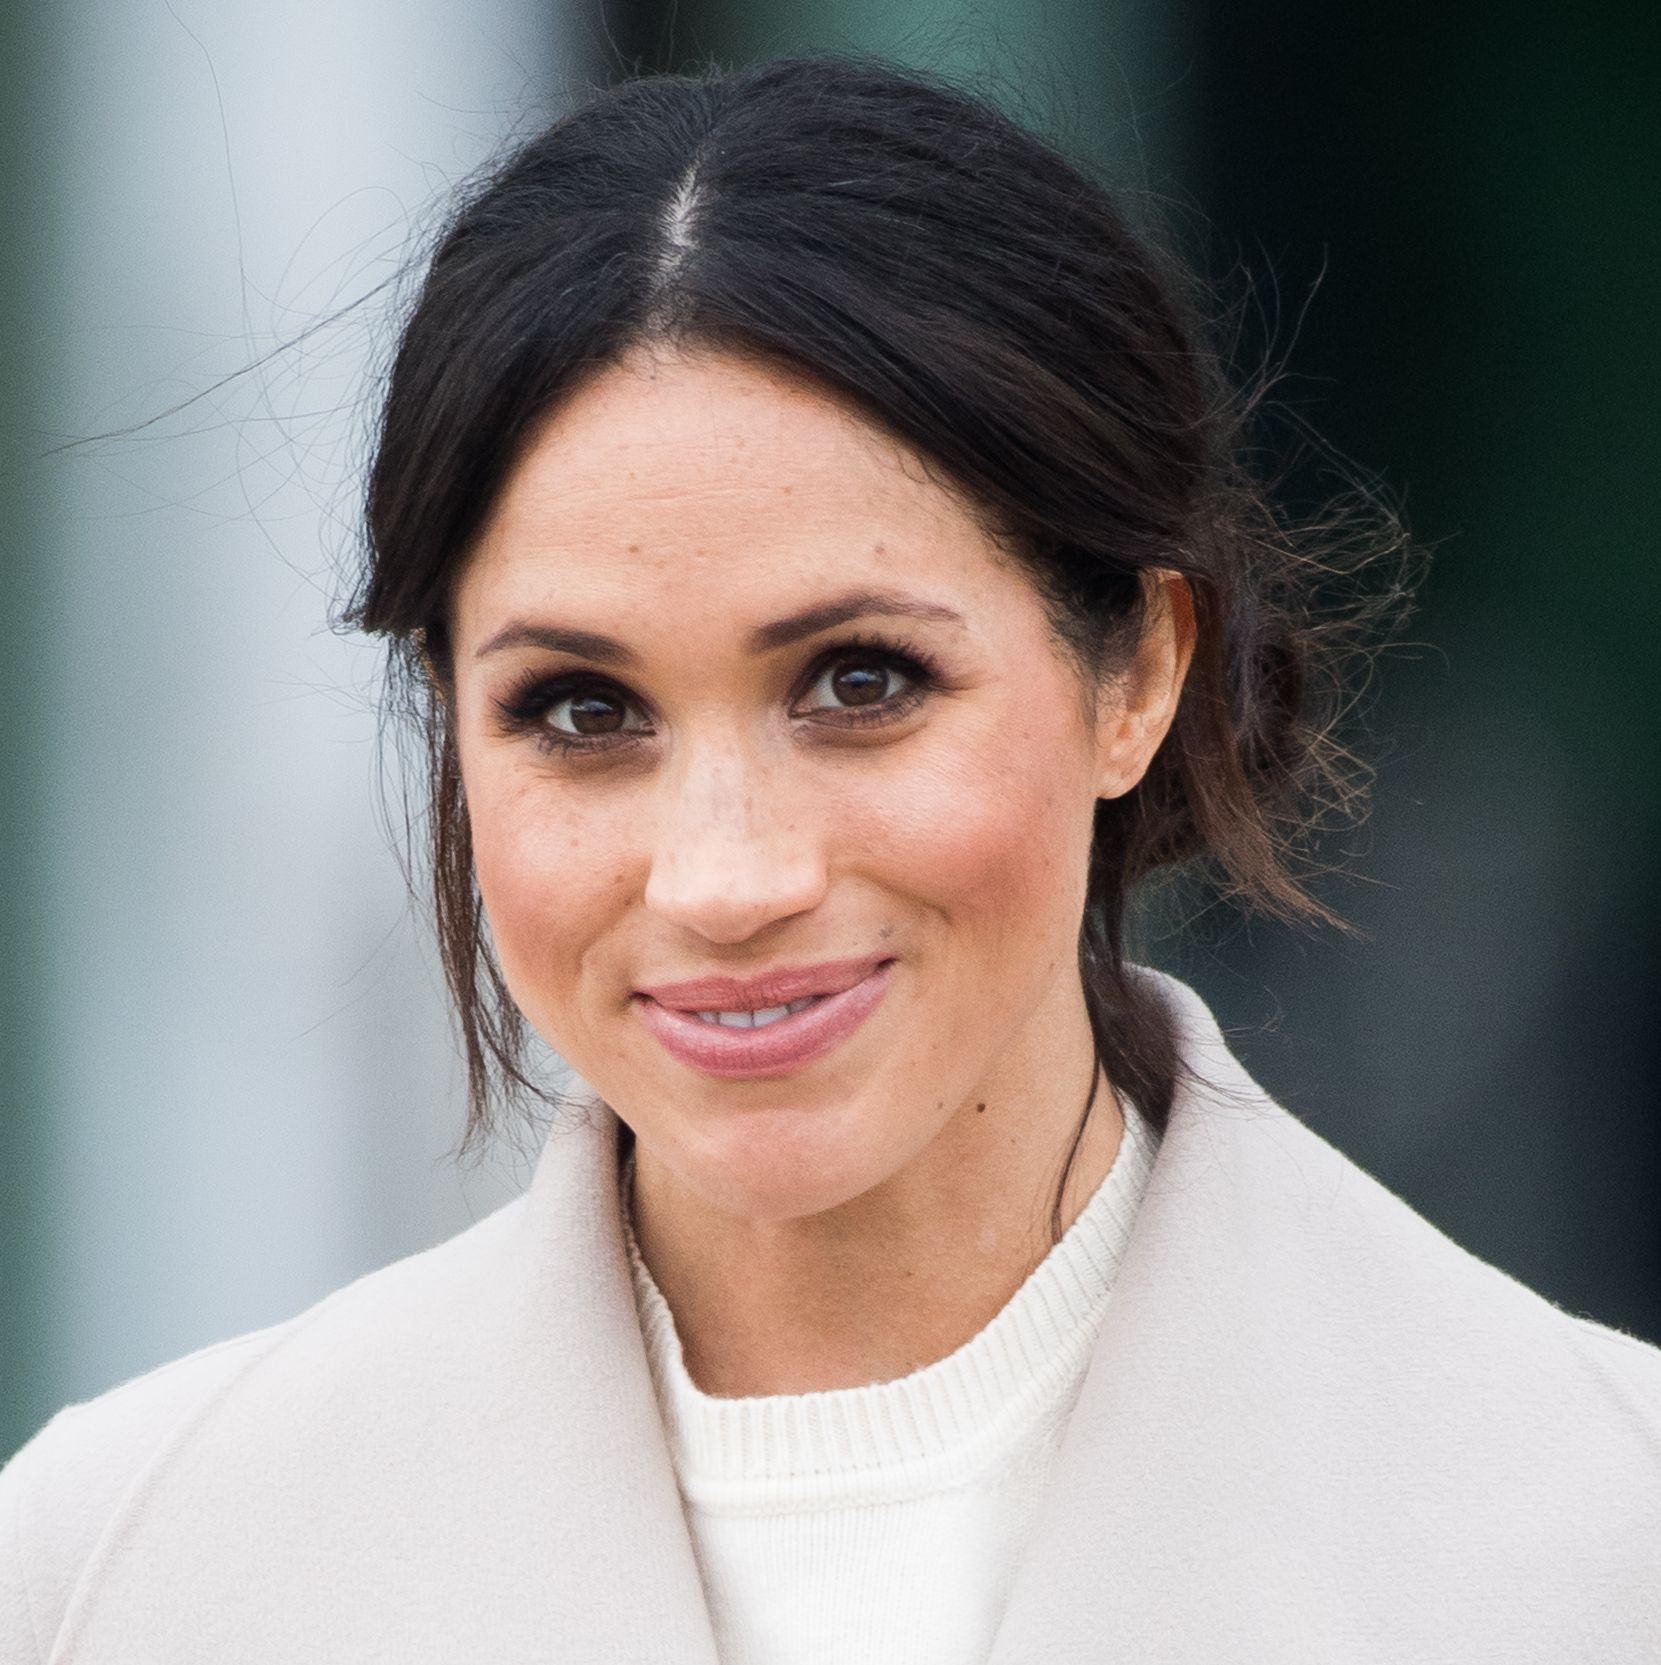 The Royal Protocol Around Meghan Markle's Baby Shower Is Pretty Weird